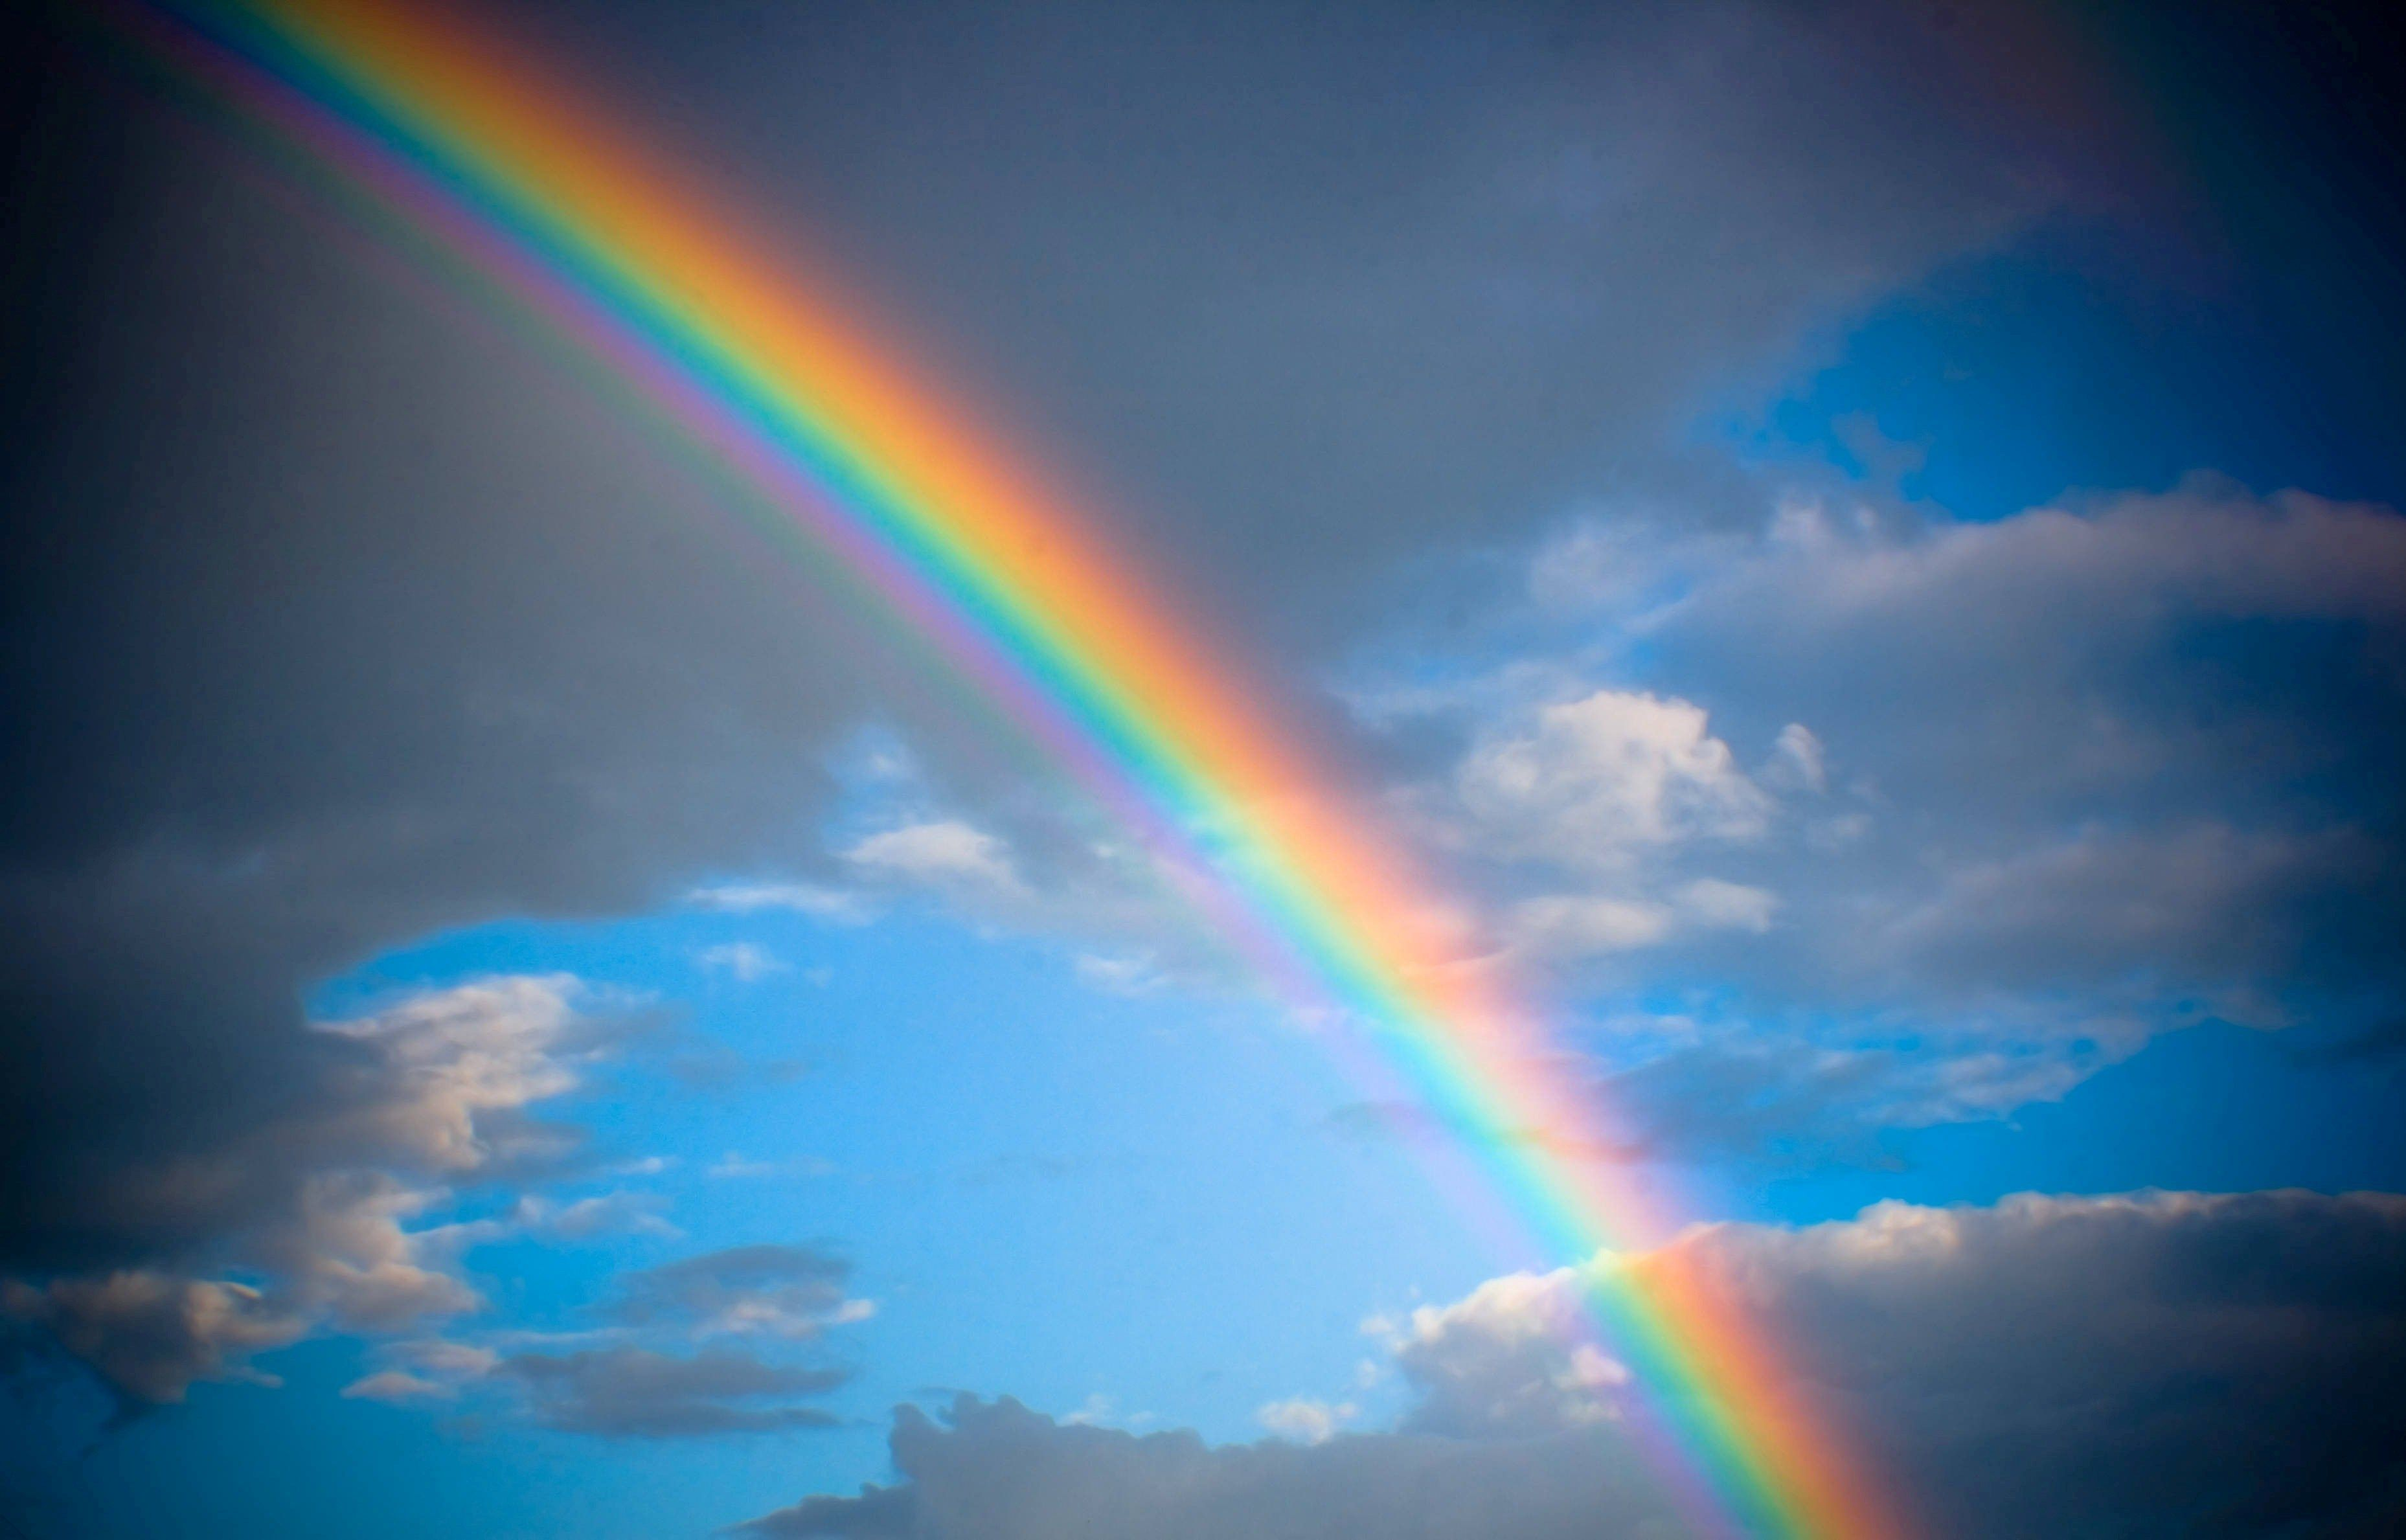 Natural rainbow on sky wallpaper hd ololoshenka pinterest natural rainbow on sky wallpaper hd voltagebd Gallery